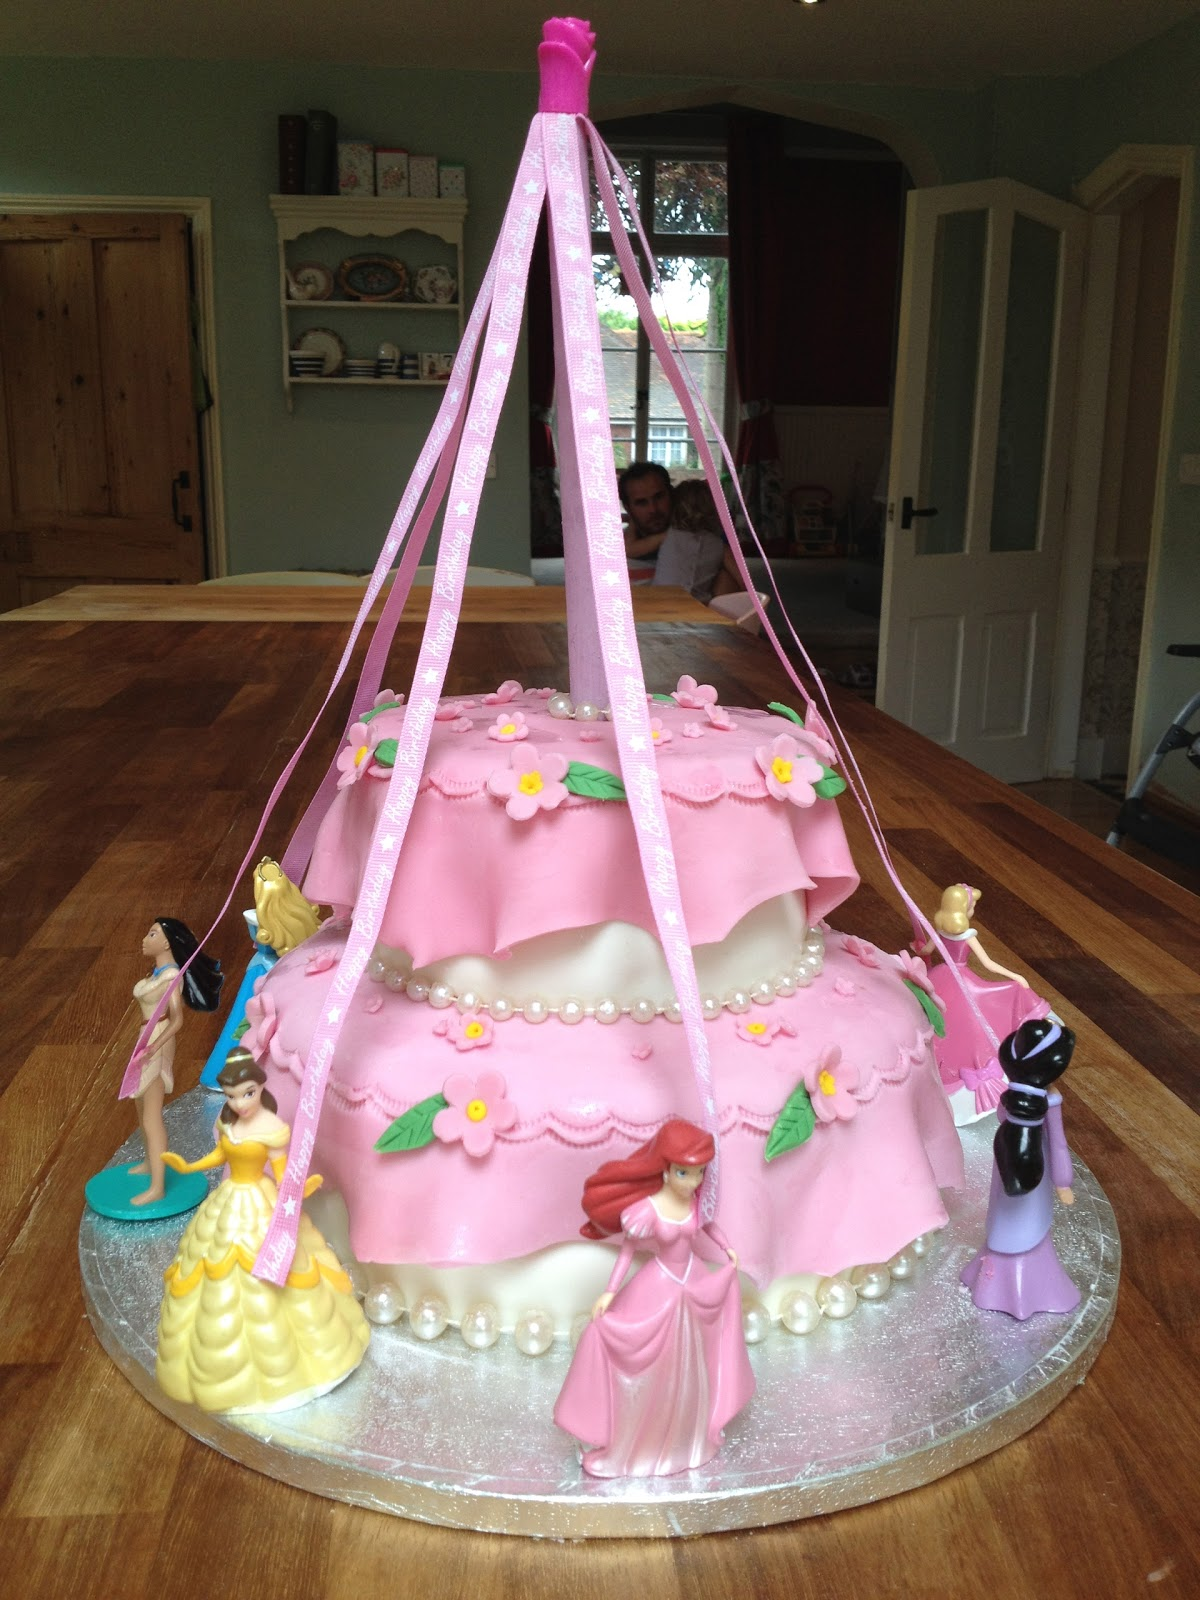 Gemmas Toddler Kitchen Girls Princess Birthday Cake